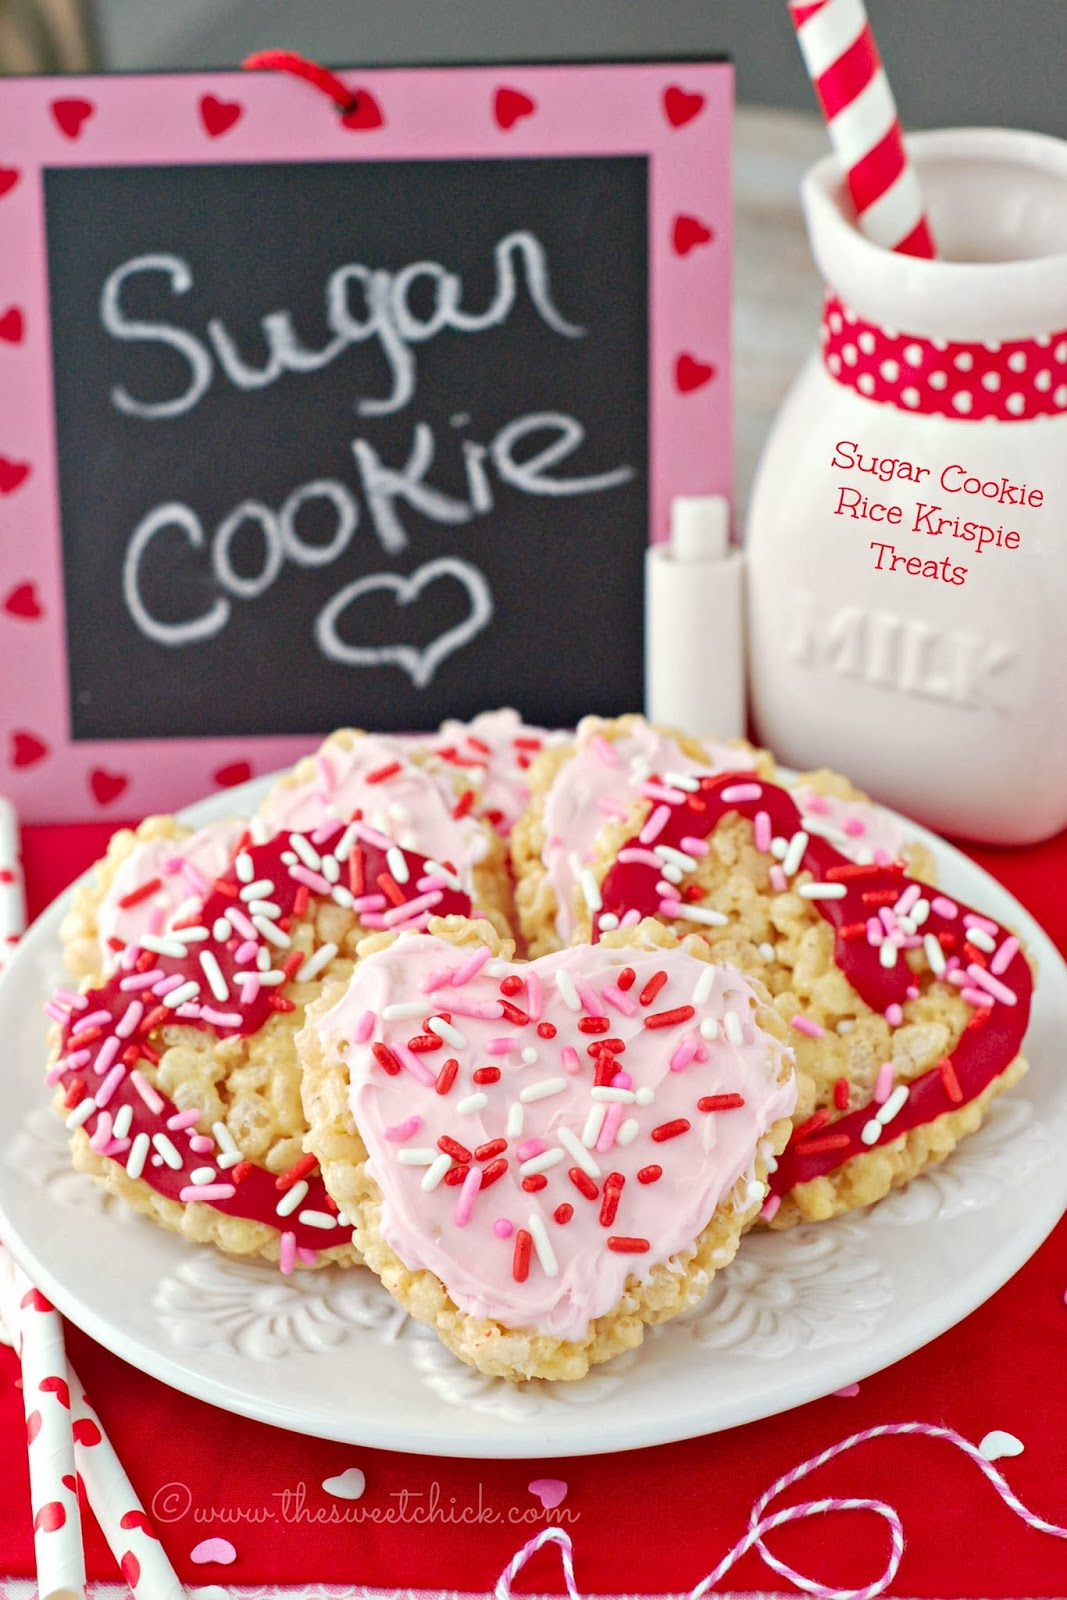 The Sweet Chick - Sugar Cookie Rice Krispie Treats